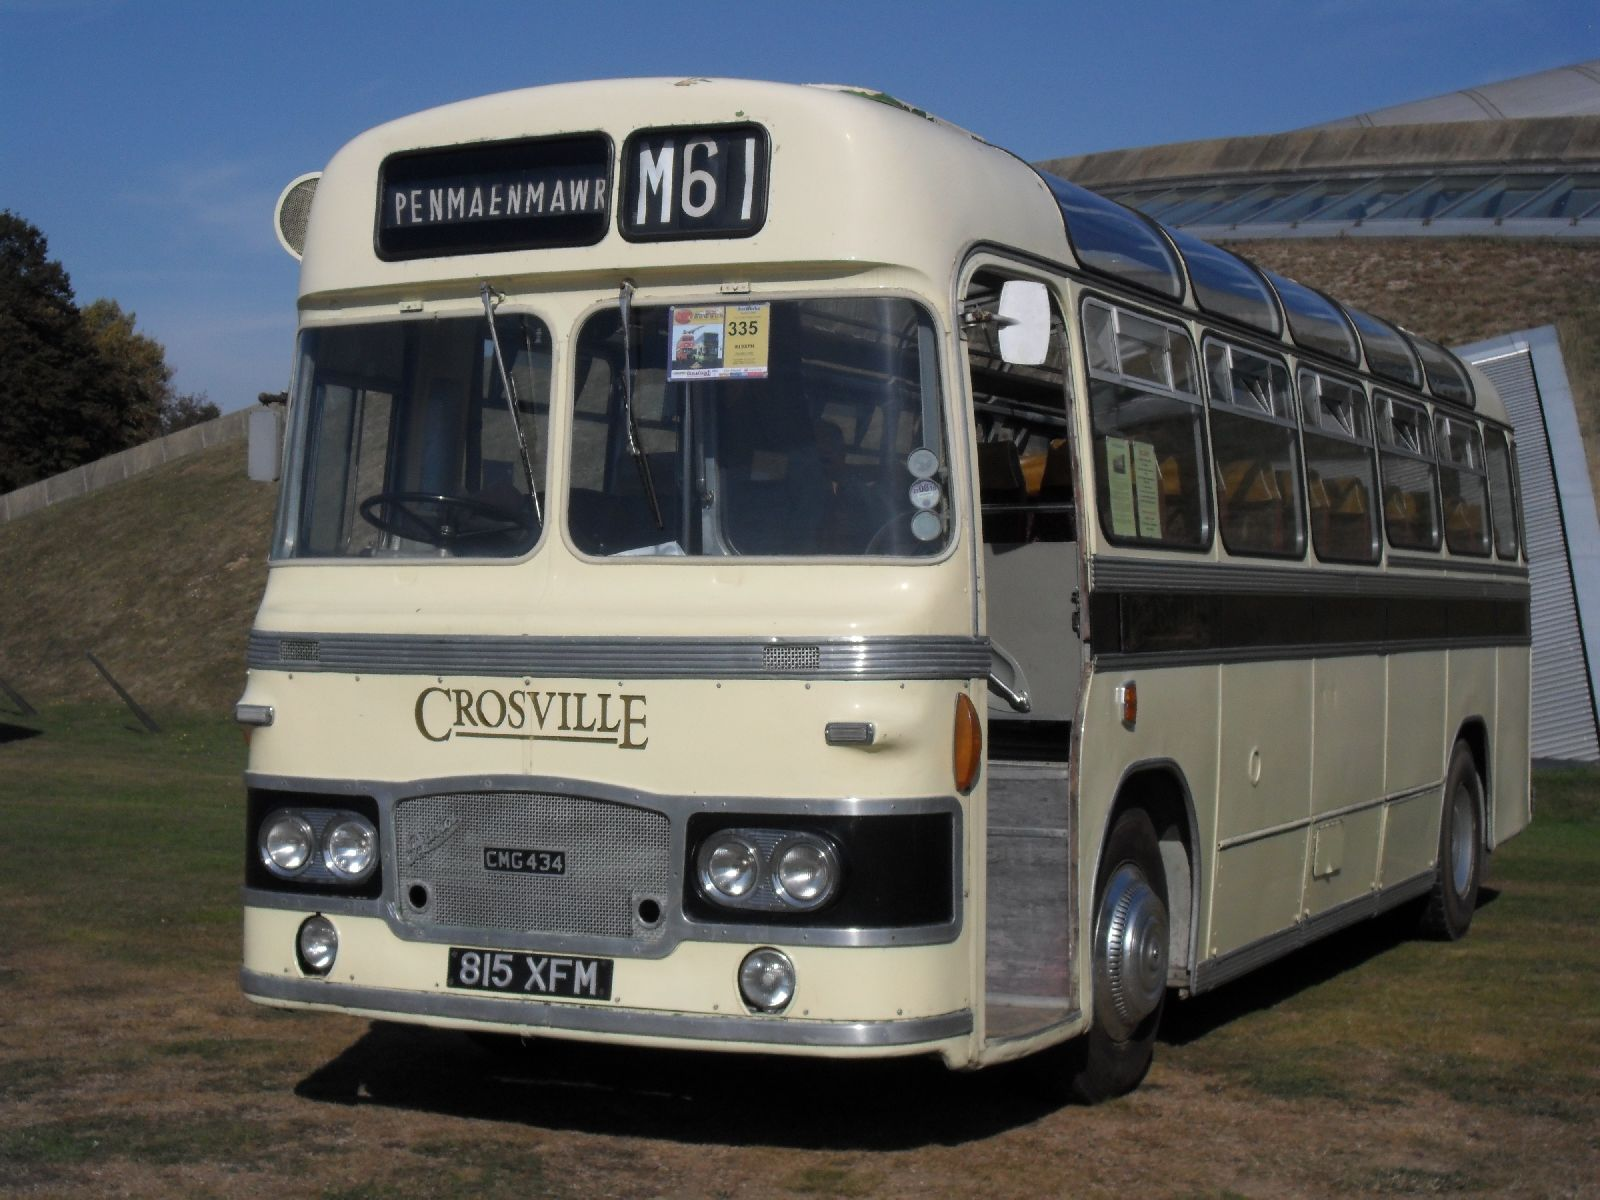 File Crosville Coach Cmg434 815 Xfm Showbus Rally